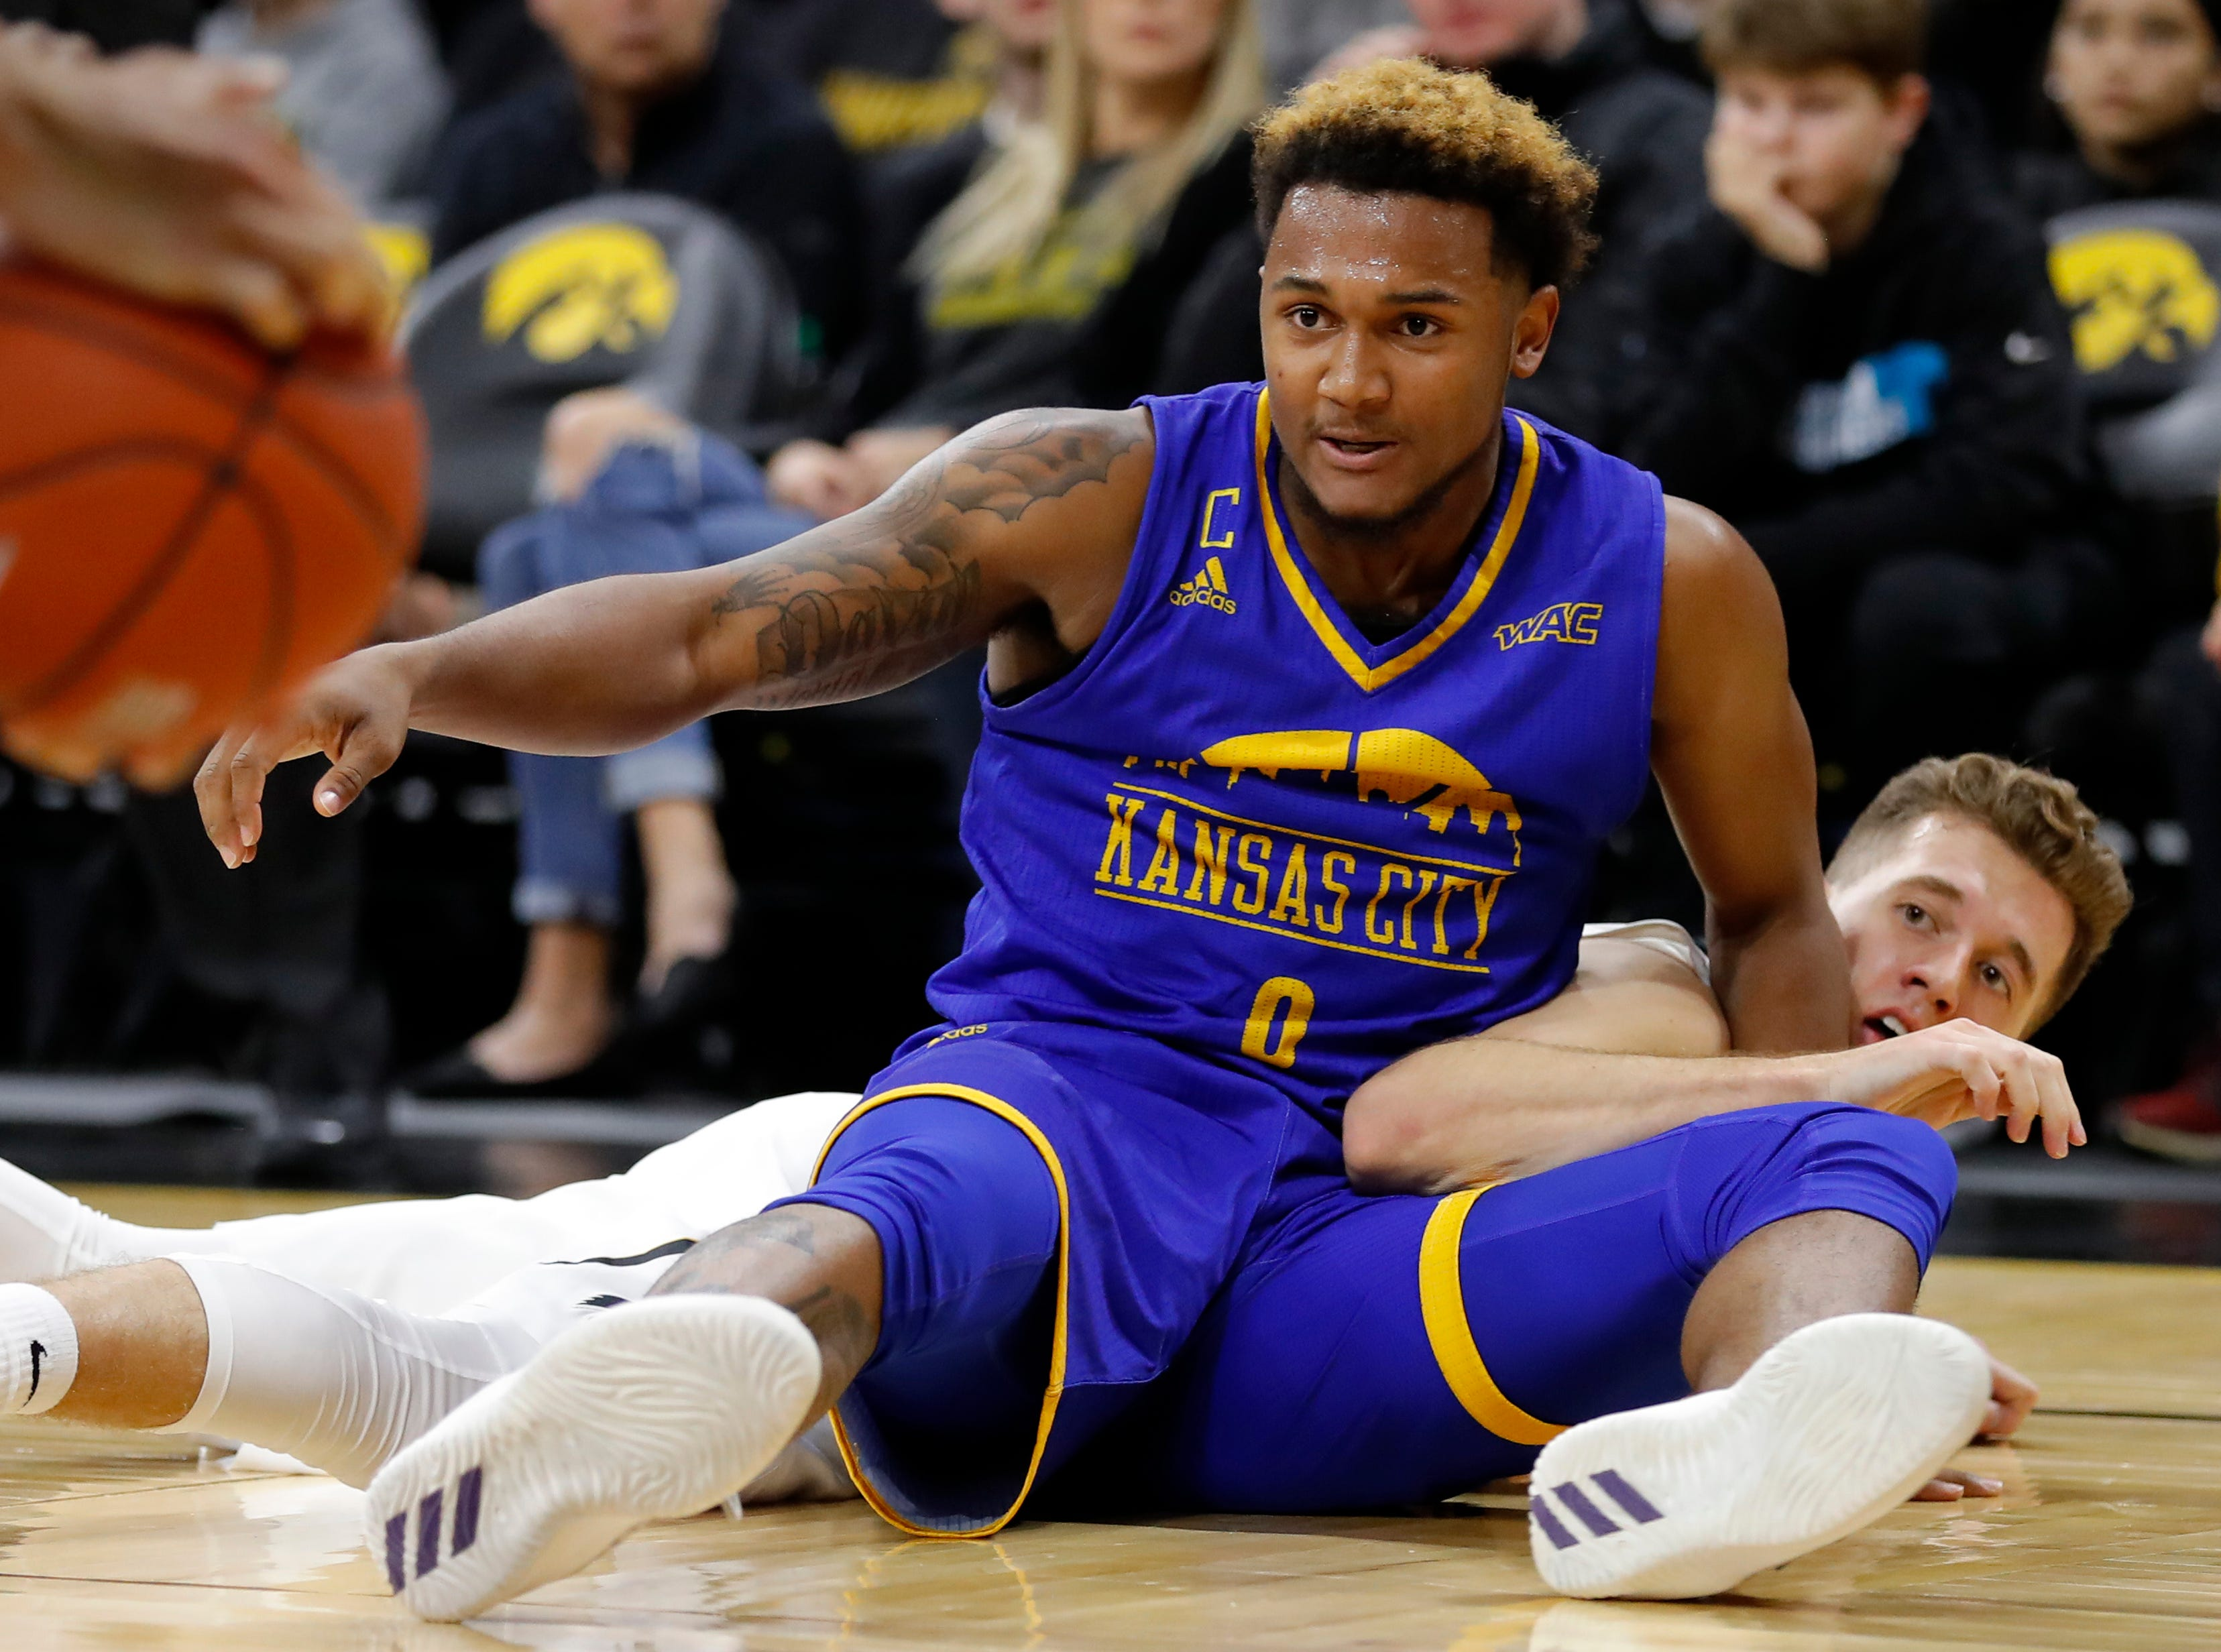 UKMC guard Brandon McKissic fights for a loose ball with Iowa guard Jordan Bohannon, right, during the first half of an NCAA college basketball game, Thursday, Nov. 8, 2018, in Iowa City, Iowa.(AP Photo/Charlie Neibergall)